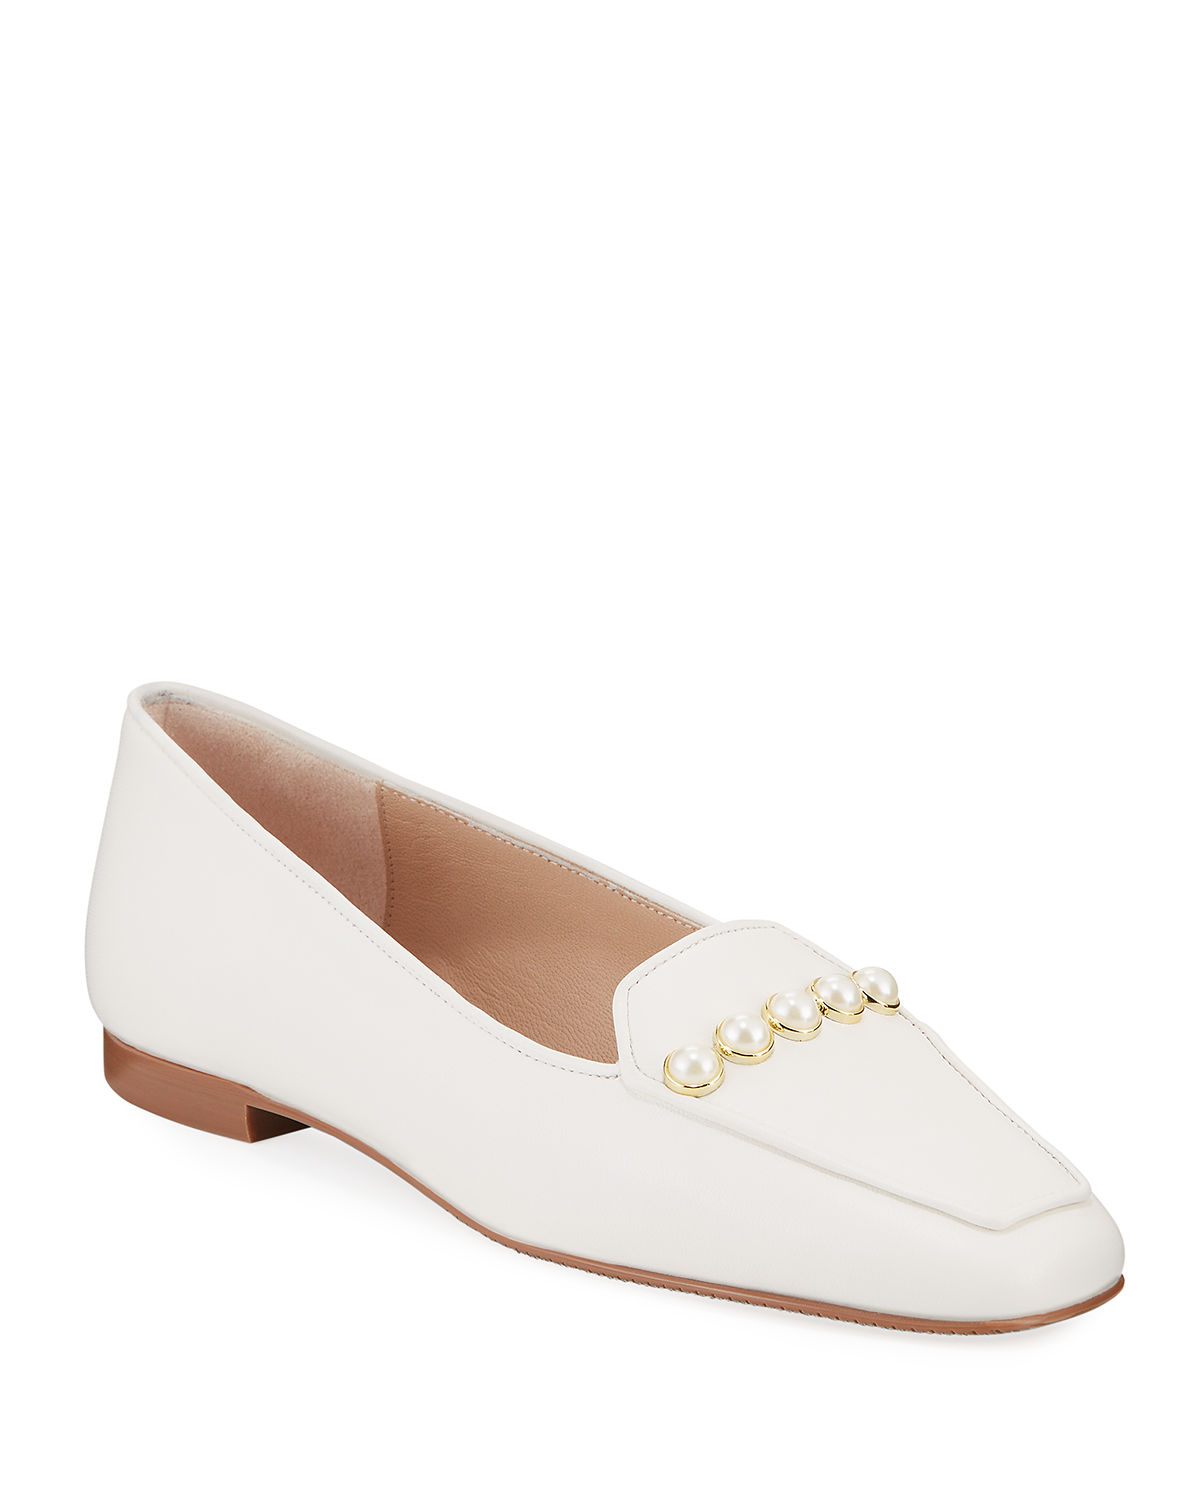 Rosie Pearly-Studded Leather Flat Loafers